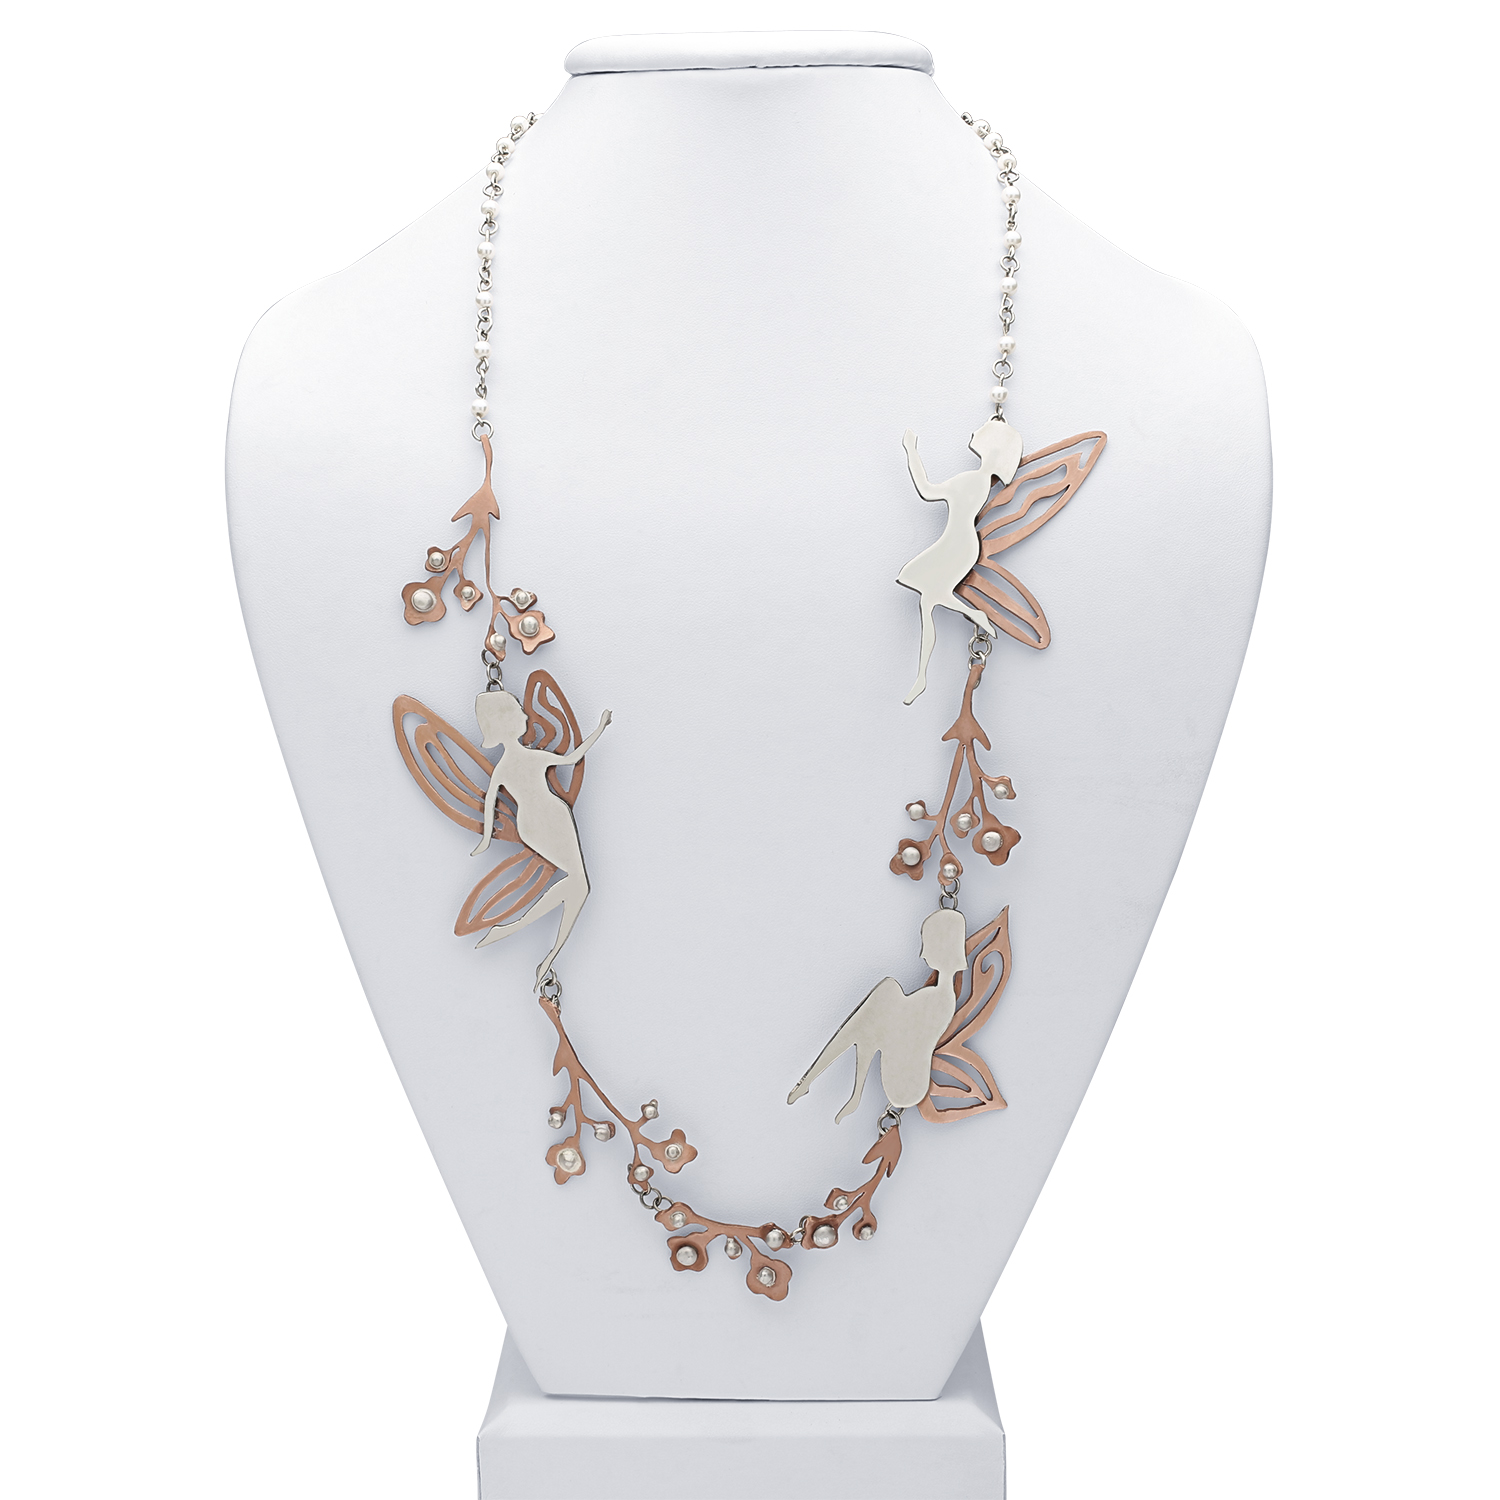 """Fairy Necklace""<br><strong>Caroline Senyszyn</strong><br> Fort Worth, TX, USA"